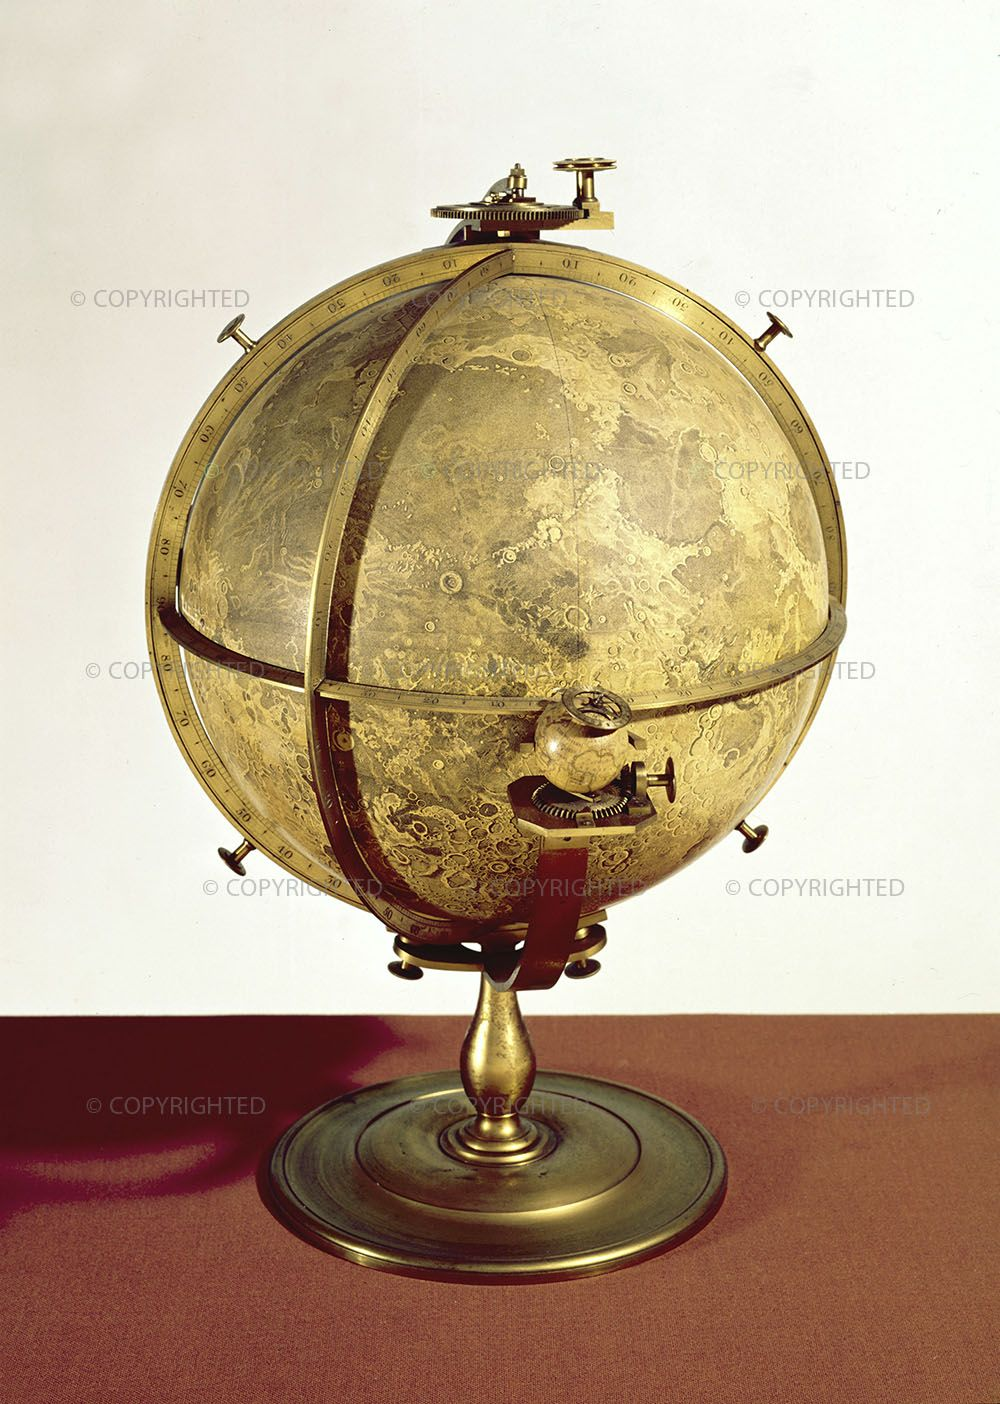 John Russell (1745-1806)  Selenographia, London, 1797-1805  London, Science Museum, inv. 1949-117    This is the oldest three-dimensional representation of the Moon. It consists of a lunar globe and a small terrestrial globe. A mechanism allows it to simulate the motion of the Moon's libration.